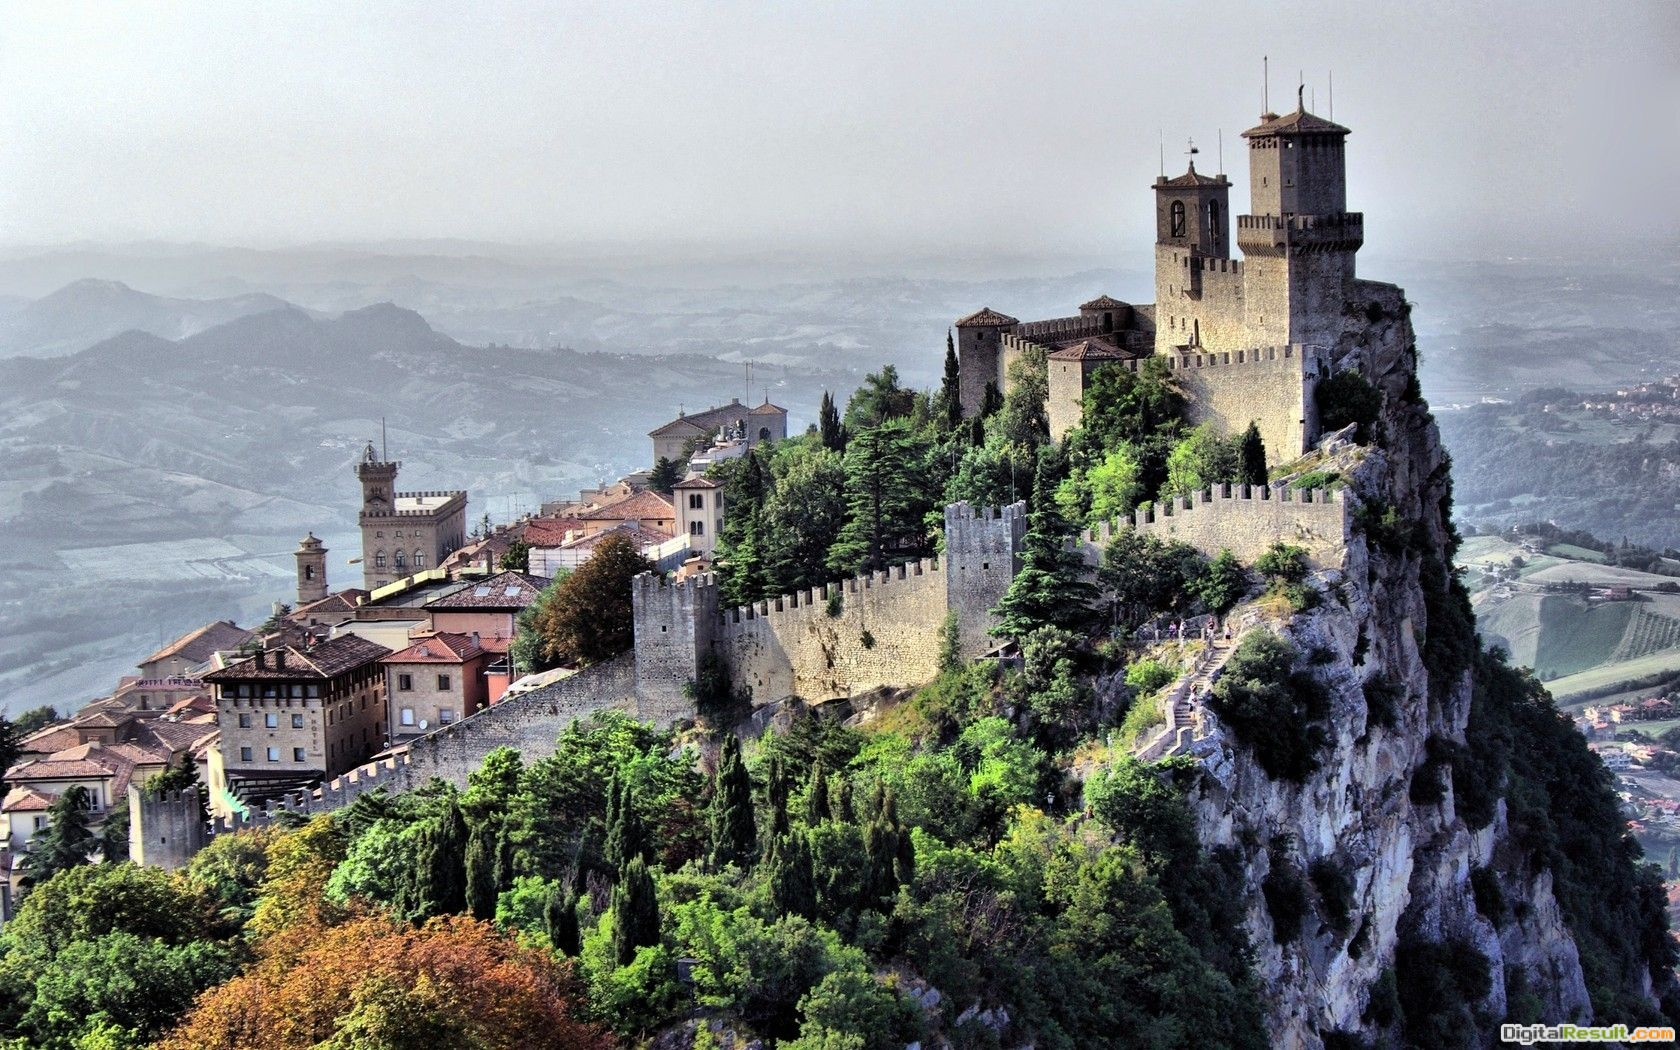 Wallpaper city, country, san marino, landscape, castle, cliff, houses 529